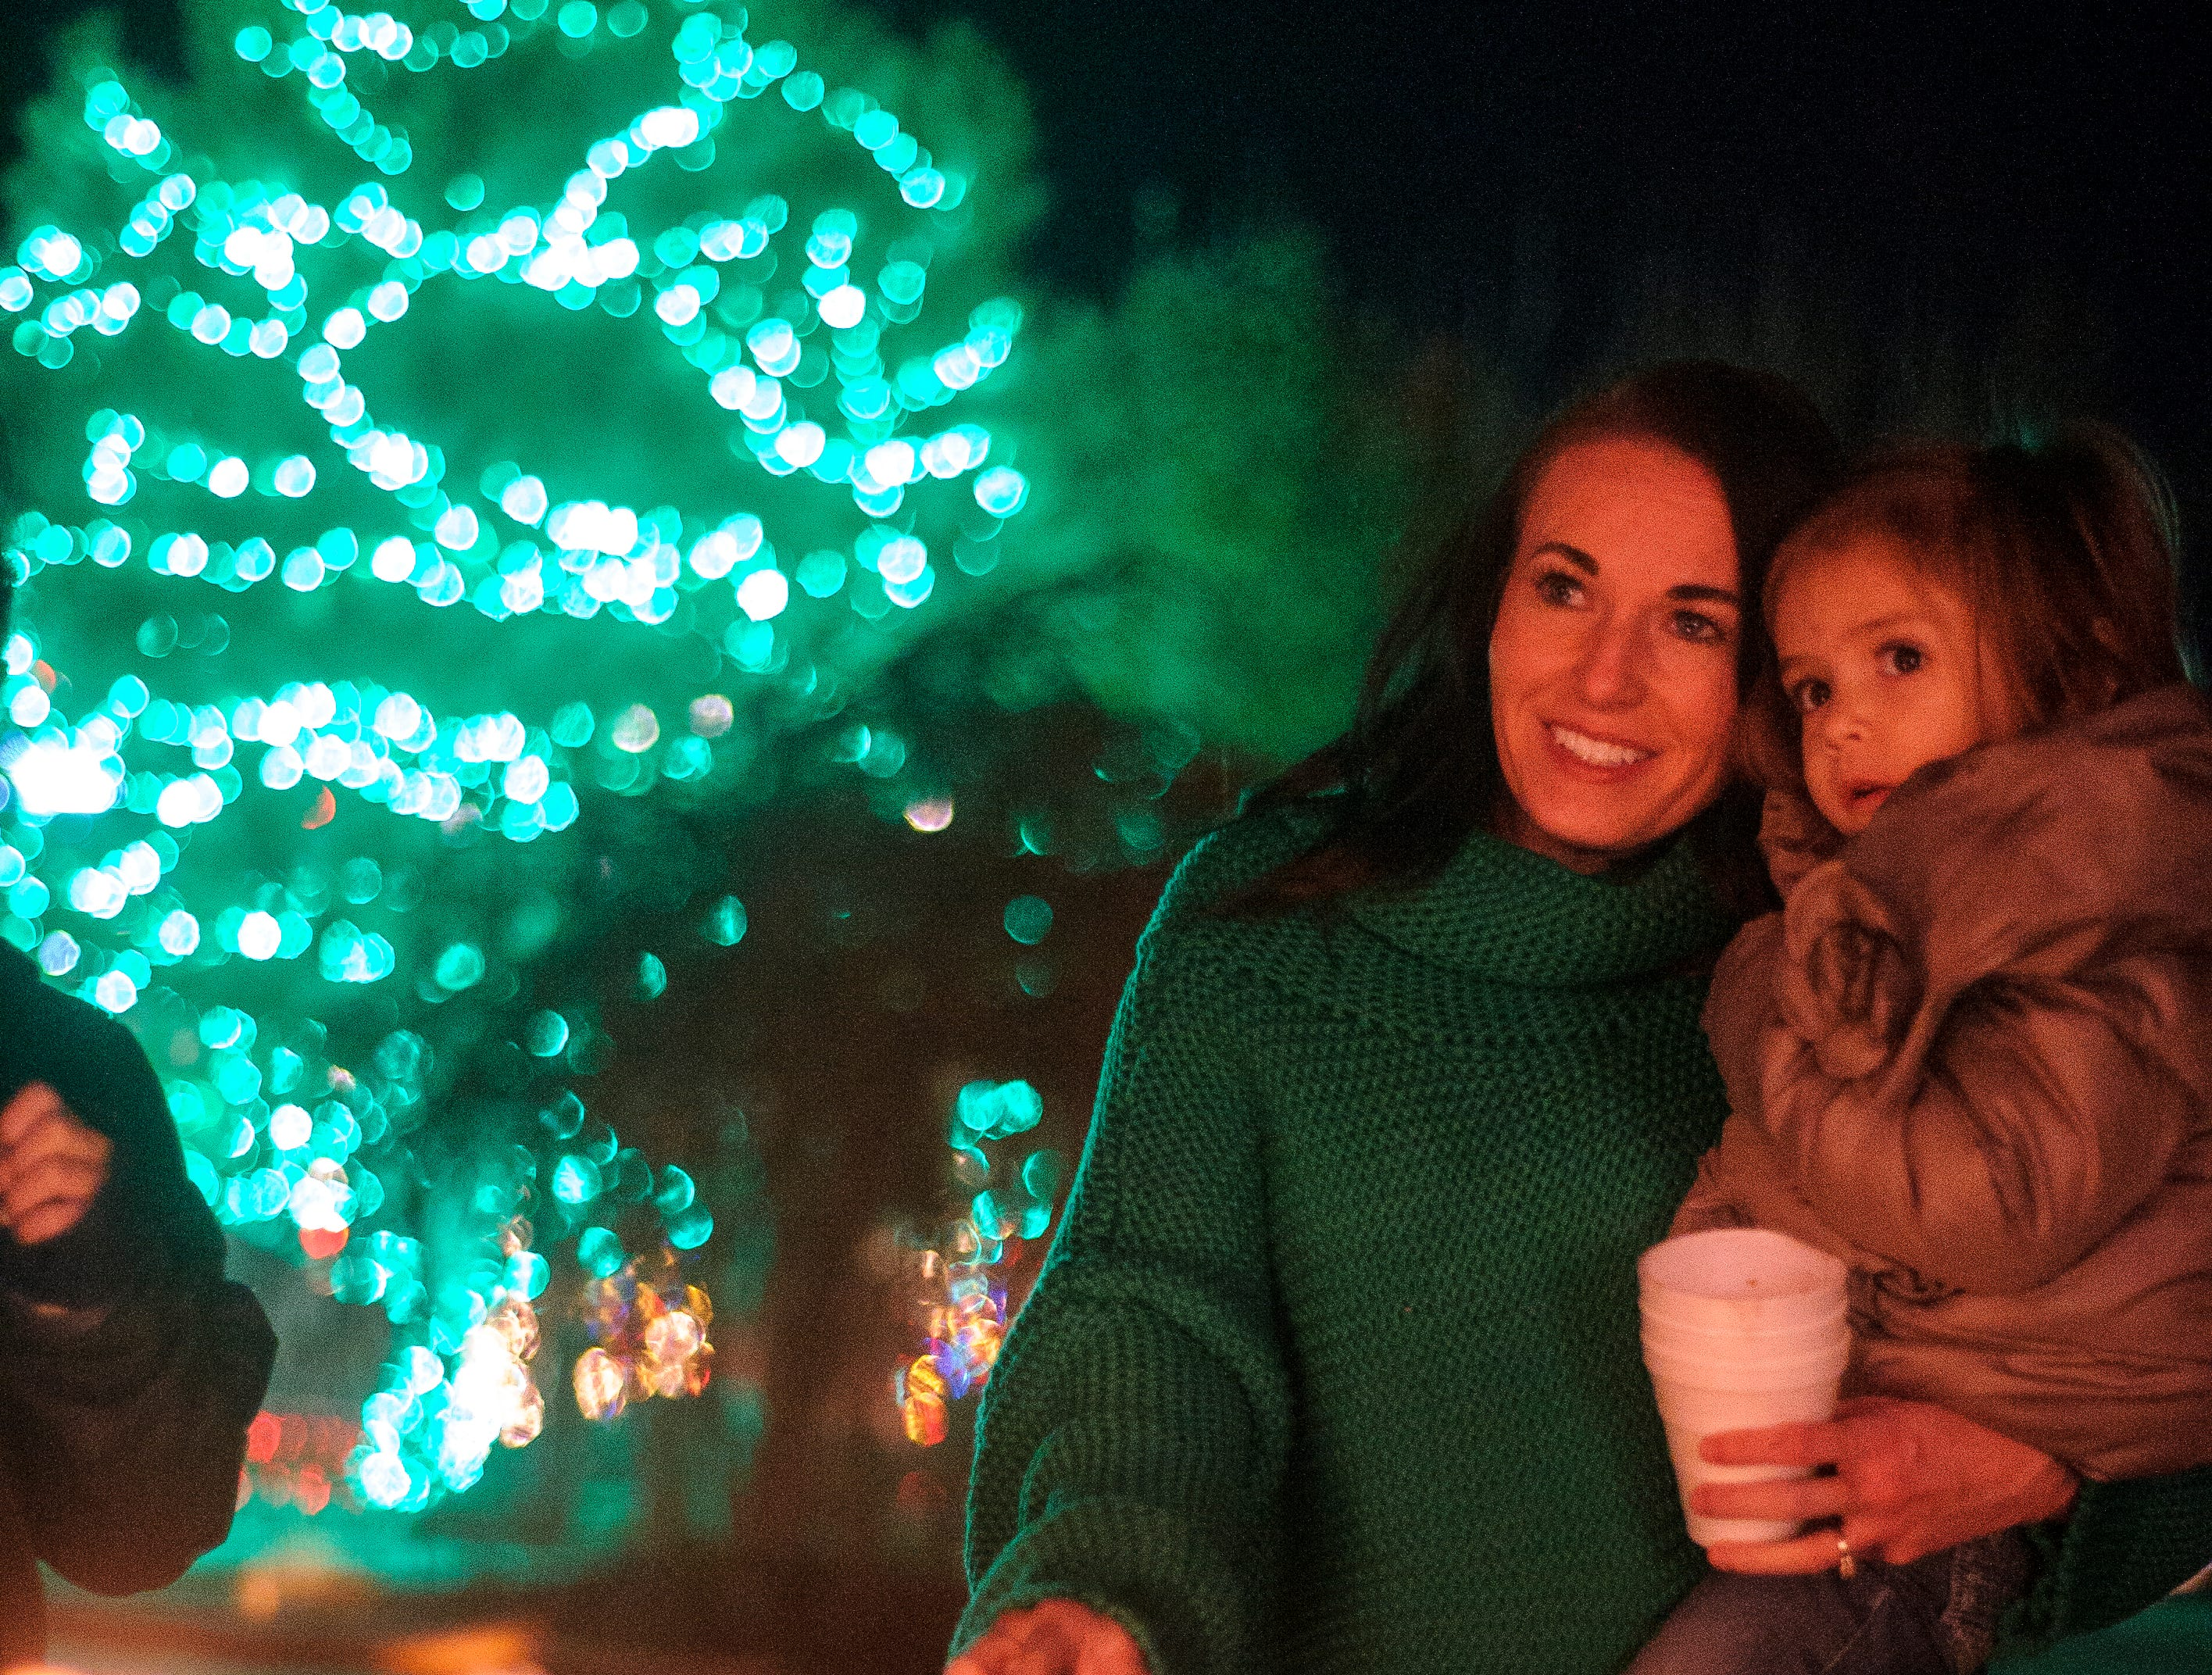 Amy Gilbert, left, and Ivy Miller, right, roast marshmellows during the opening night of Christmas Lane in Cedar City Friday, November 23, 2018. The lights will be on every night through New Year's Eve, and can be seen all along the Canyon Ridge neighborhood.